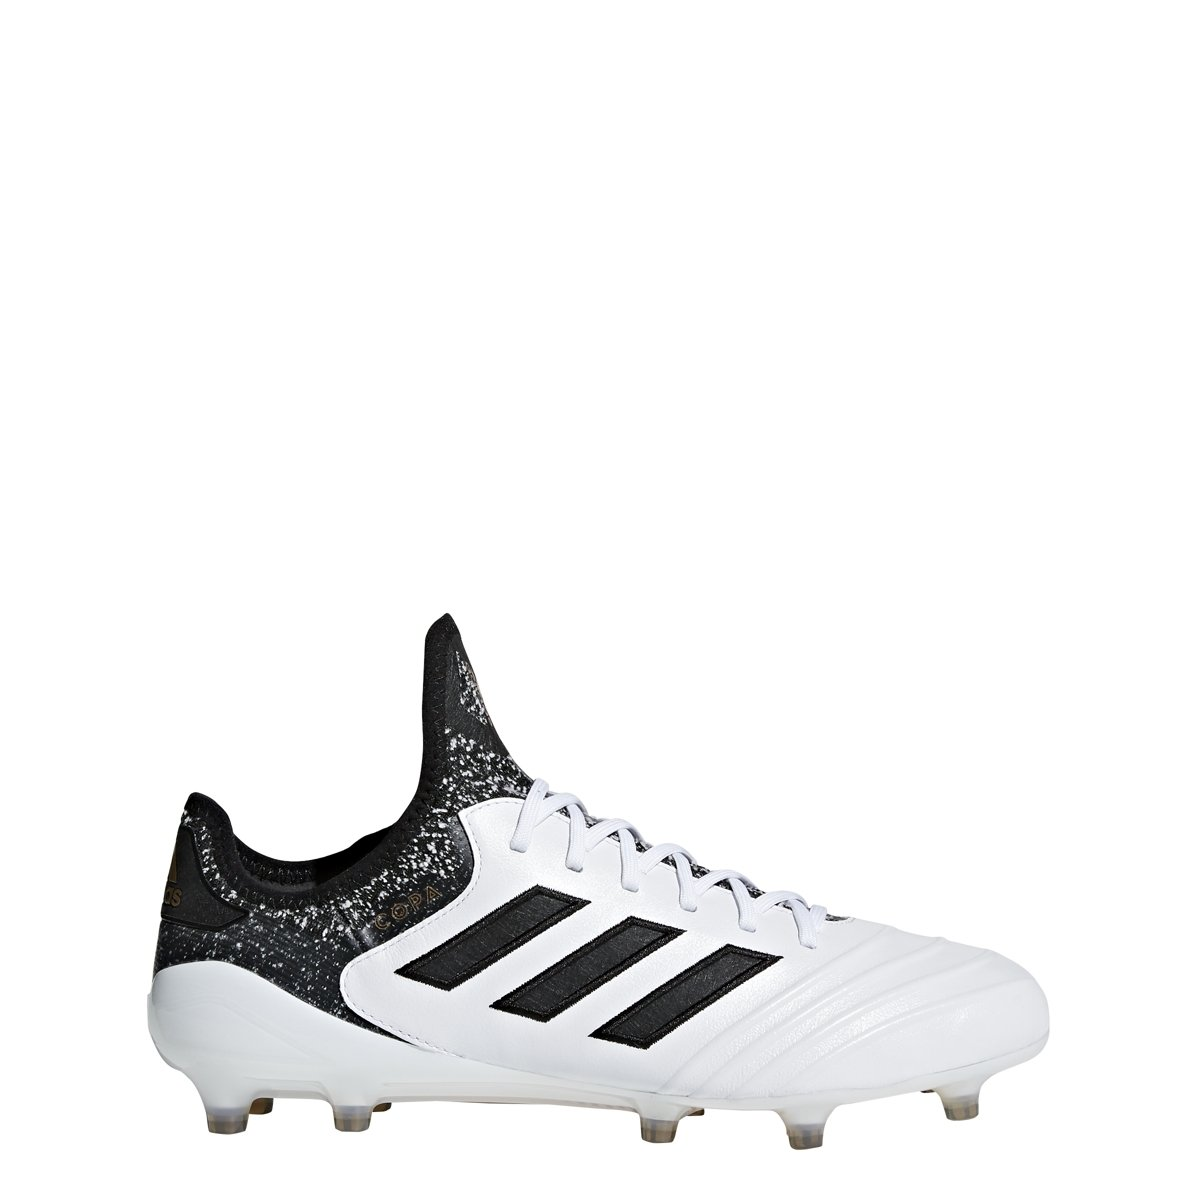 buy online 507dc 9dbeb Amazon.com  adidas Copa 18.1 Mens Firm Ground Soccer Cleats (9.5 D(M) US)  WhiteBlack  Soccer